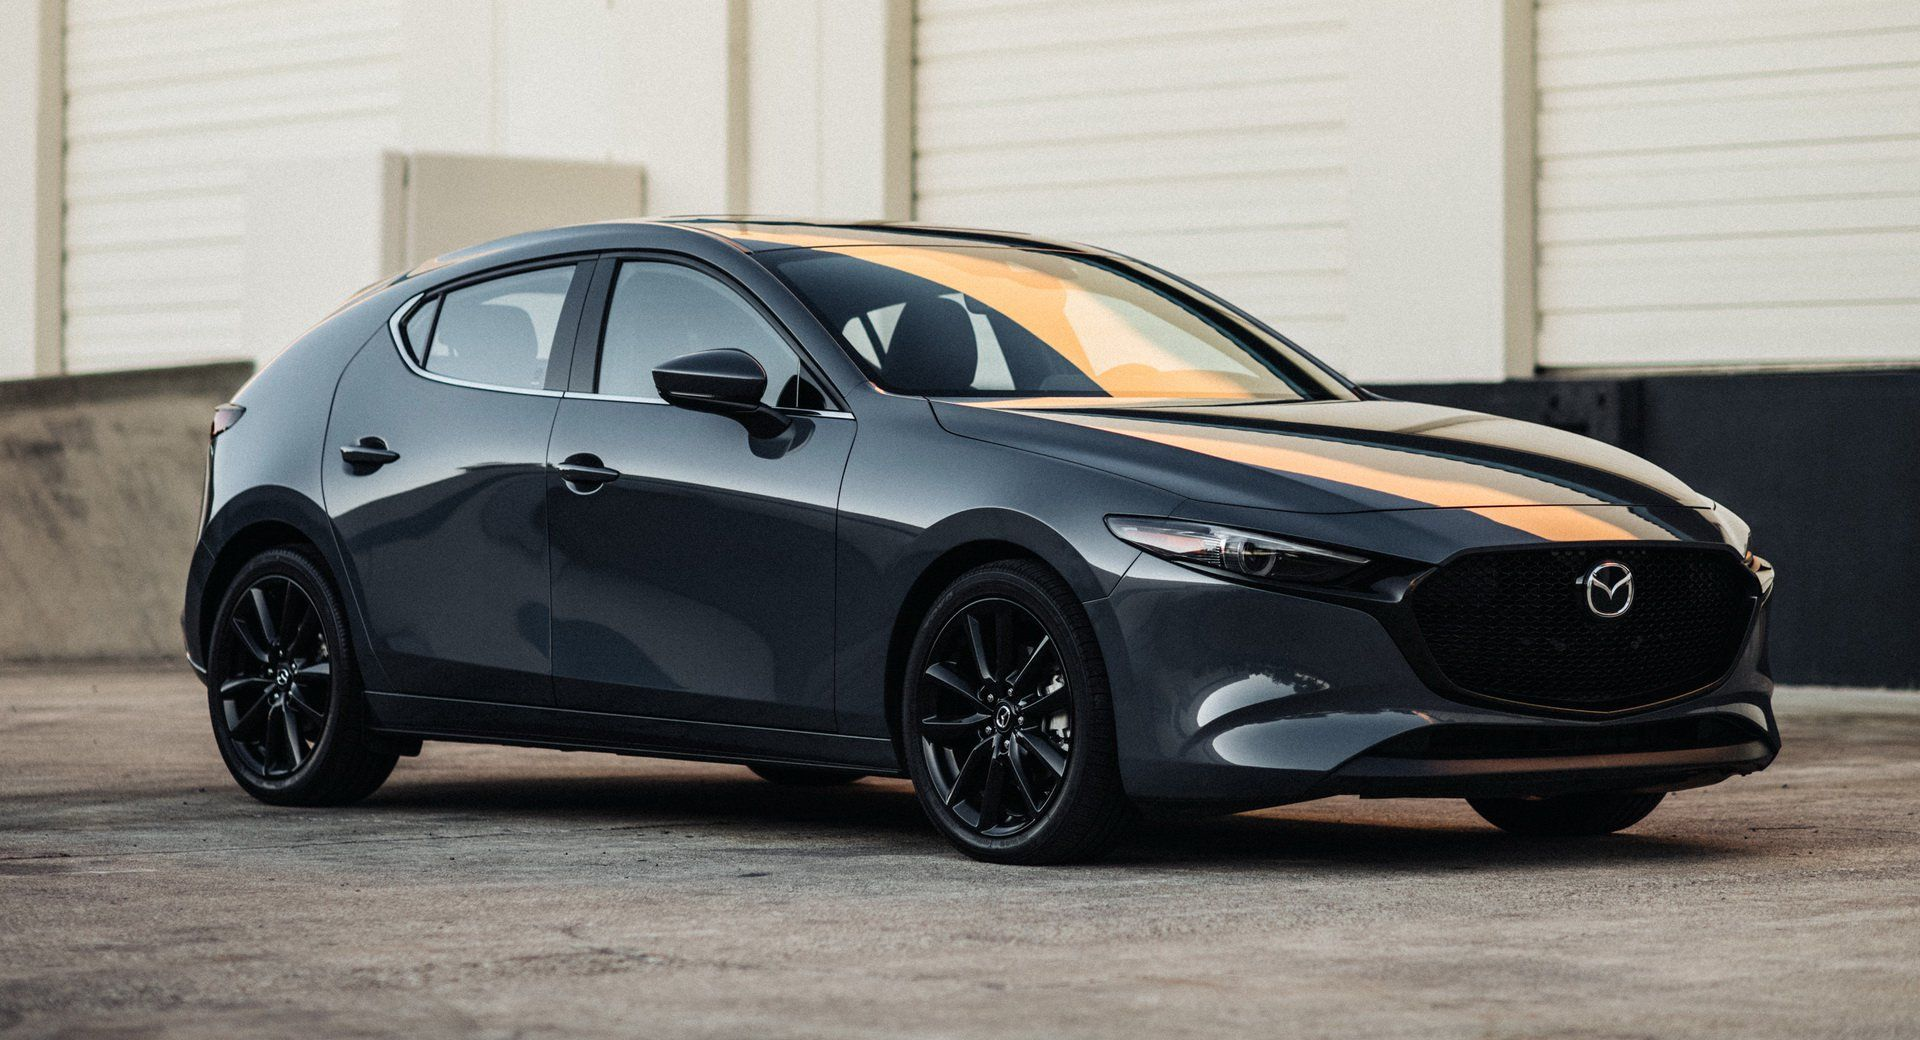 2020 Mazda3 Gains More Active Safety Features As Standard Starts From 22 420 Mazda Mazda3 Prices Cars Carsofinstagram C Mazda 3 Hatchback Mazda Mazda 3